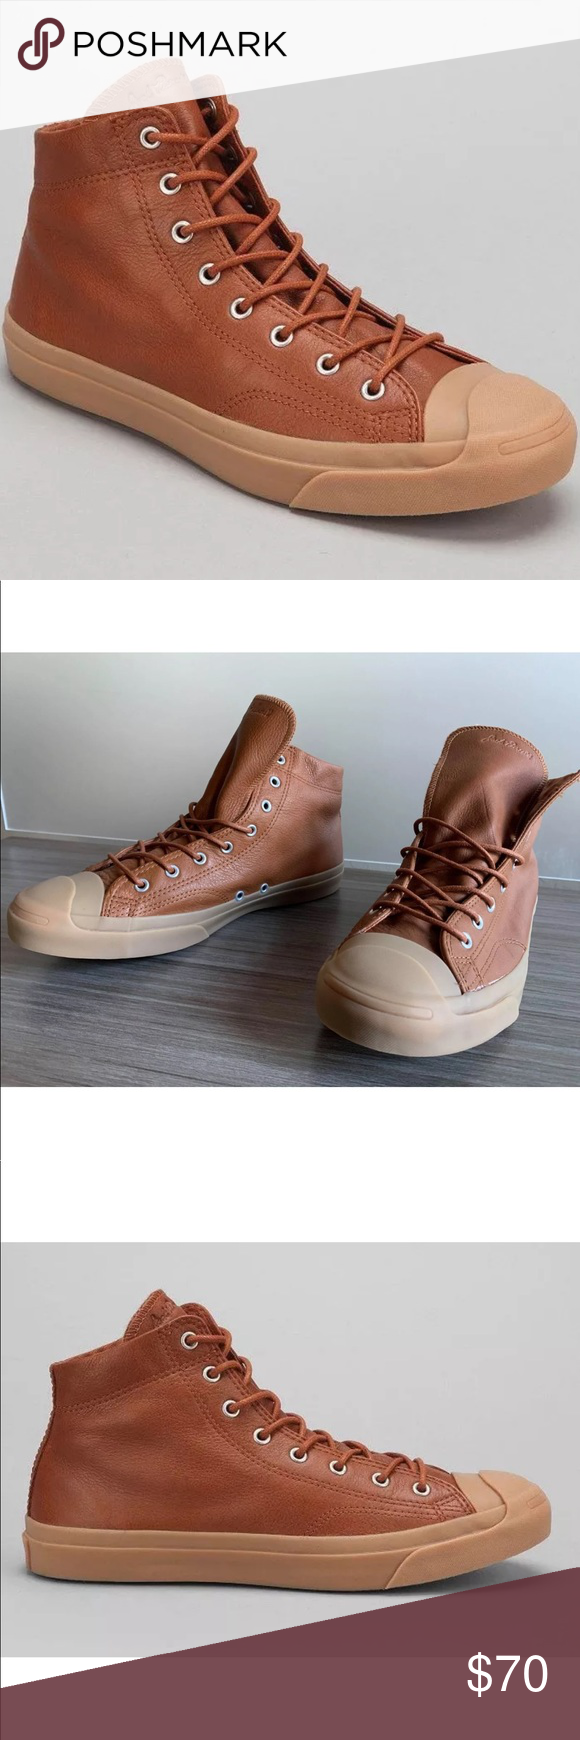 7f9b456a653b Men s Converse Jack Purcell Boots Mid Shoes NEW CONVERSE JACK PURCELL MID  SHOES MEN S SIZE 10.5